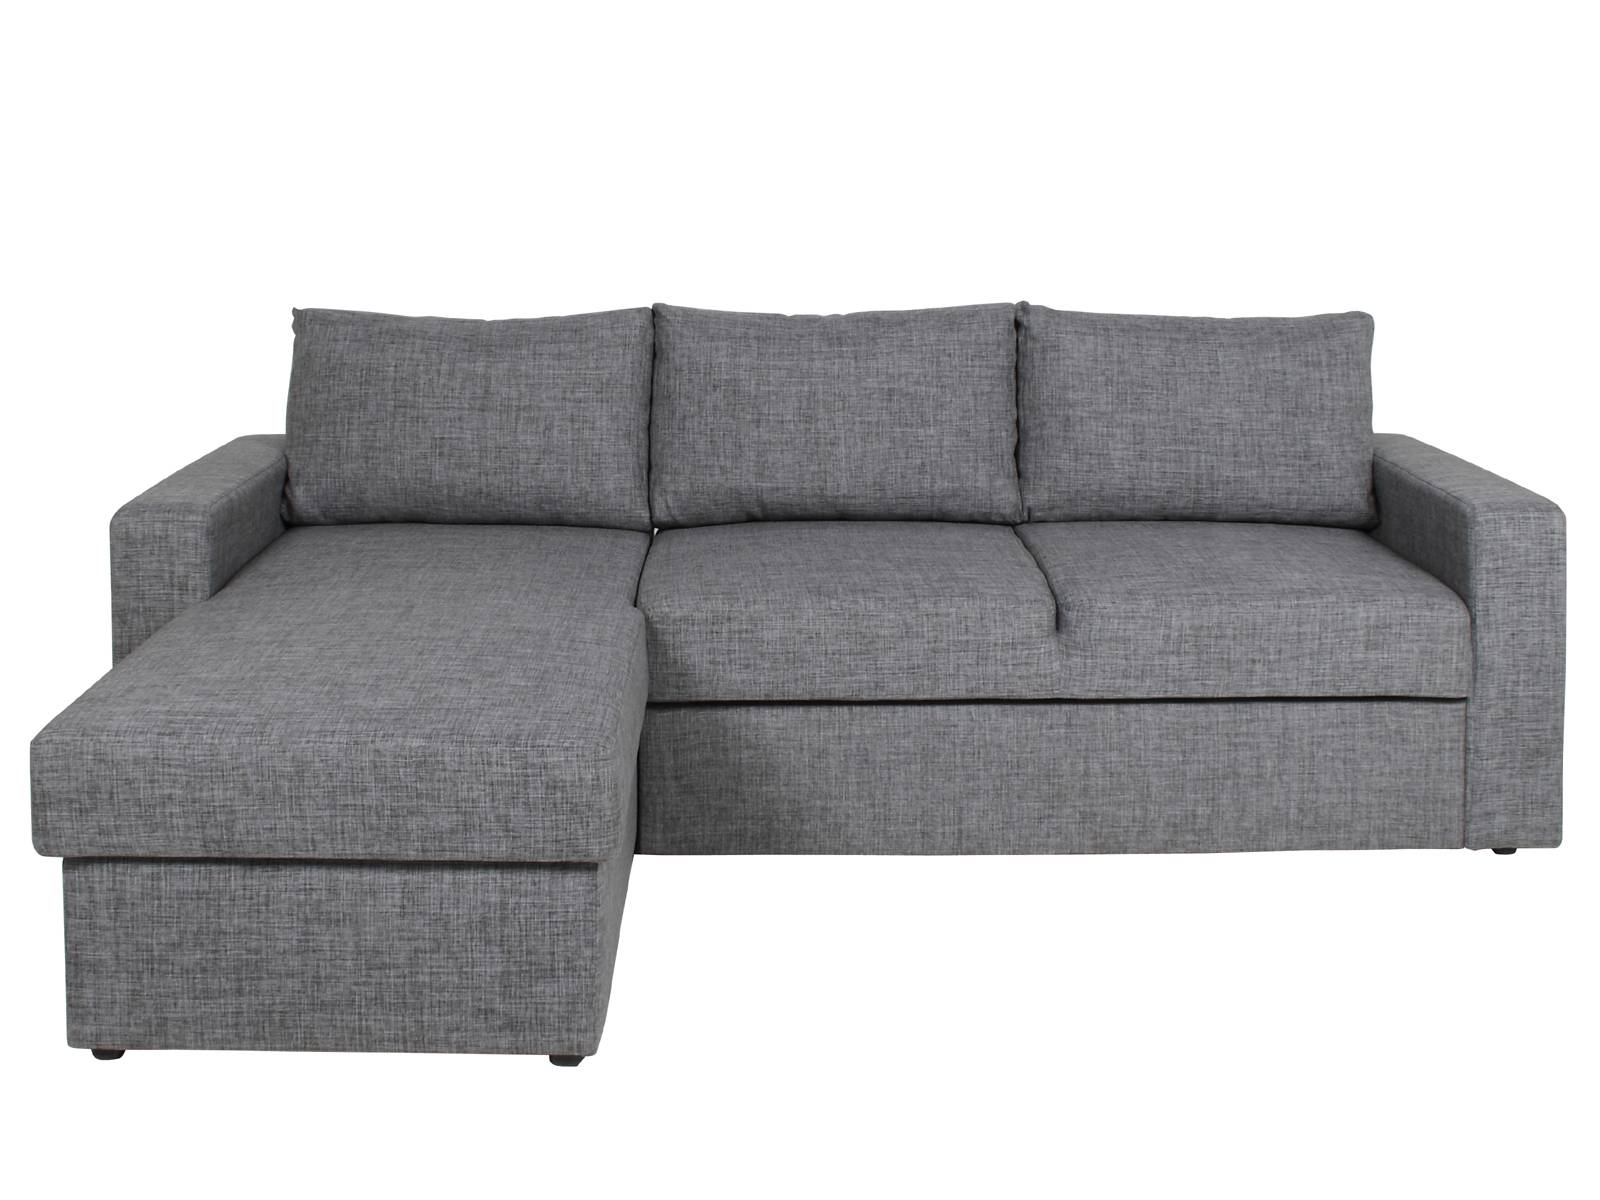 Sofas Center : Corner Sofa Mondo Angle Storage Loungelovers intended for Cheap Corner Sofa Beds (Image 26 of 30)